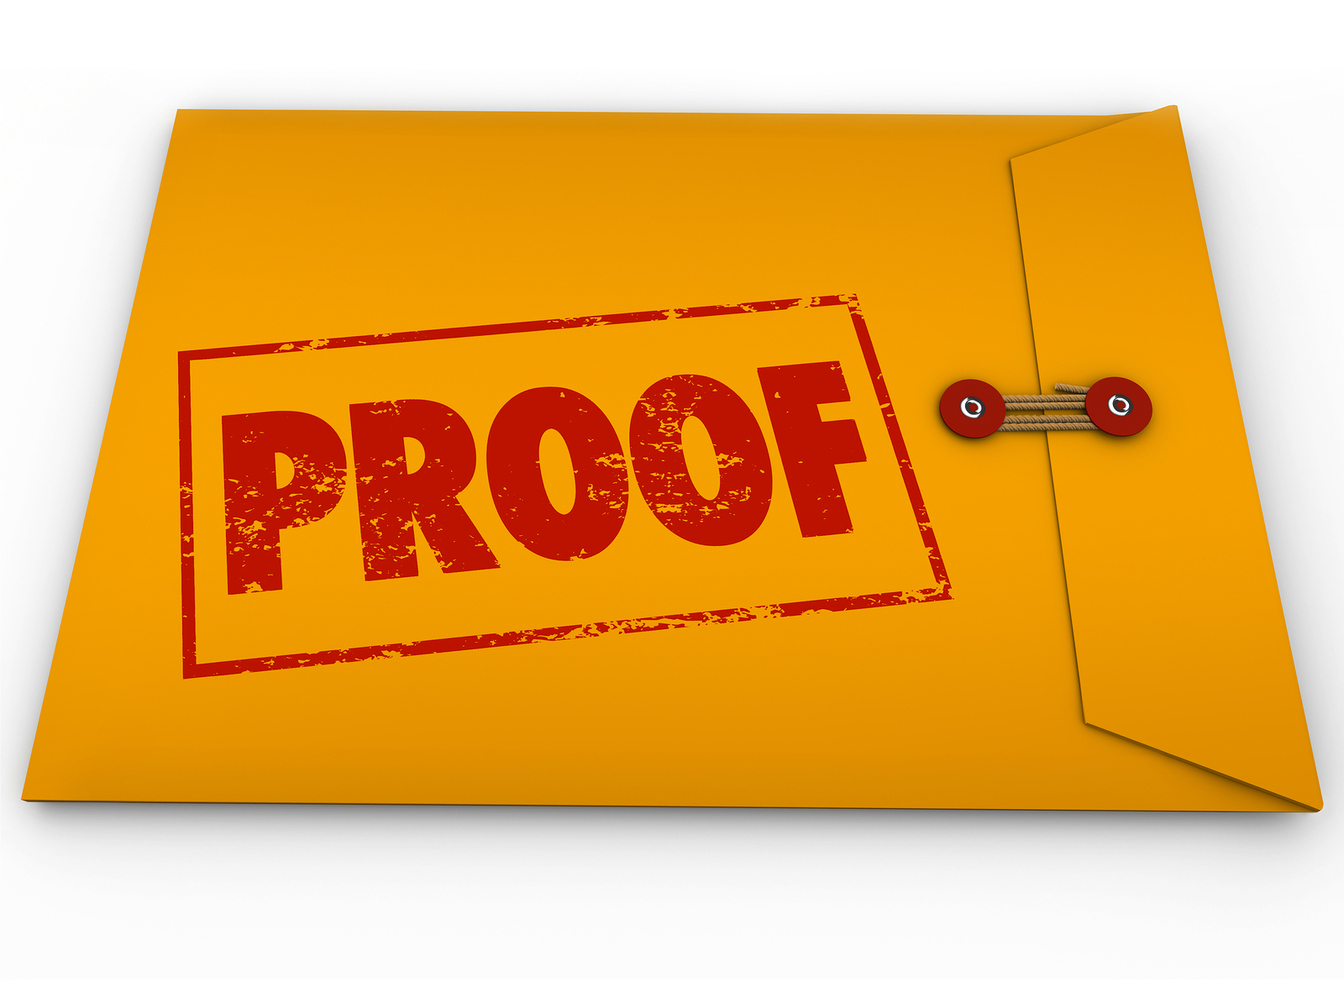 5 Proven Ways To Leverage Social Proof For Your Brand